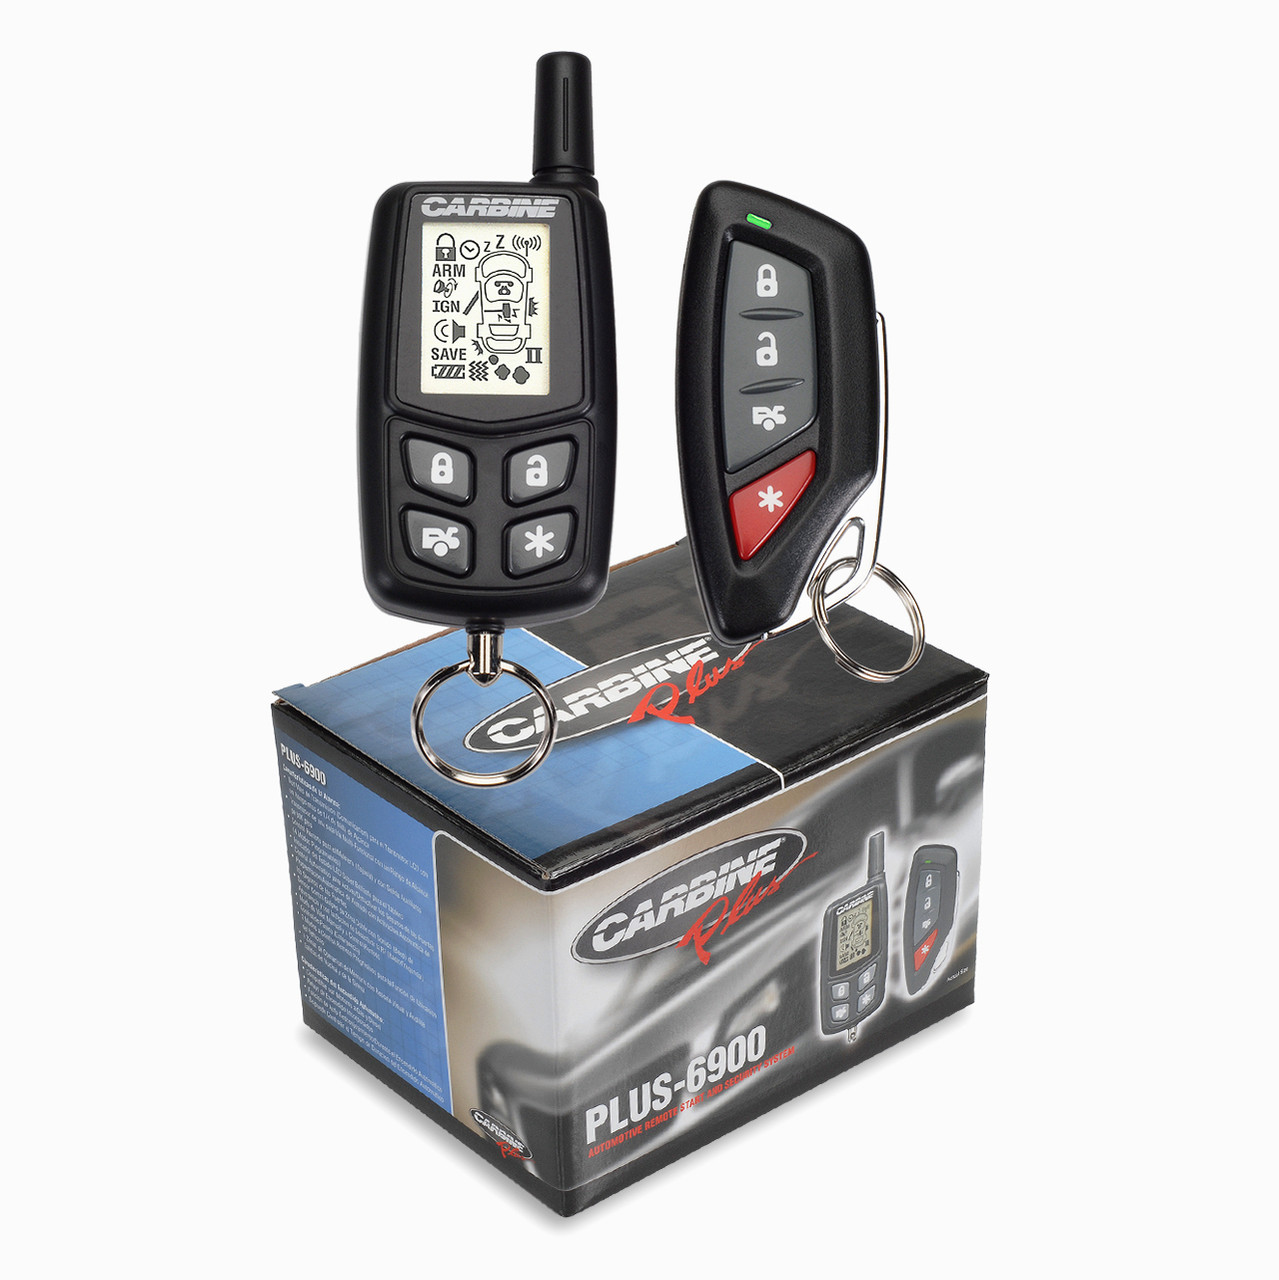 medium resolution of carbine plus 6900 4 channel two way remote start security system viper car alarm wiring diagram carbine car alarm wiring diagram